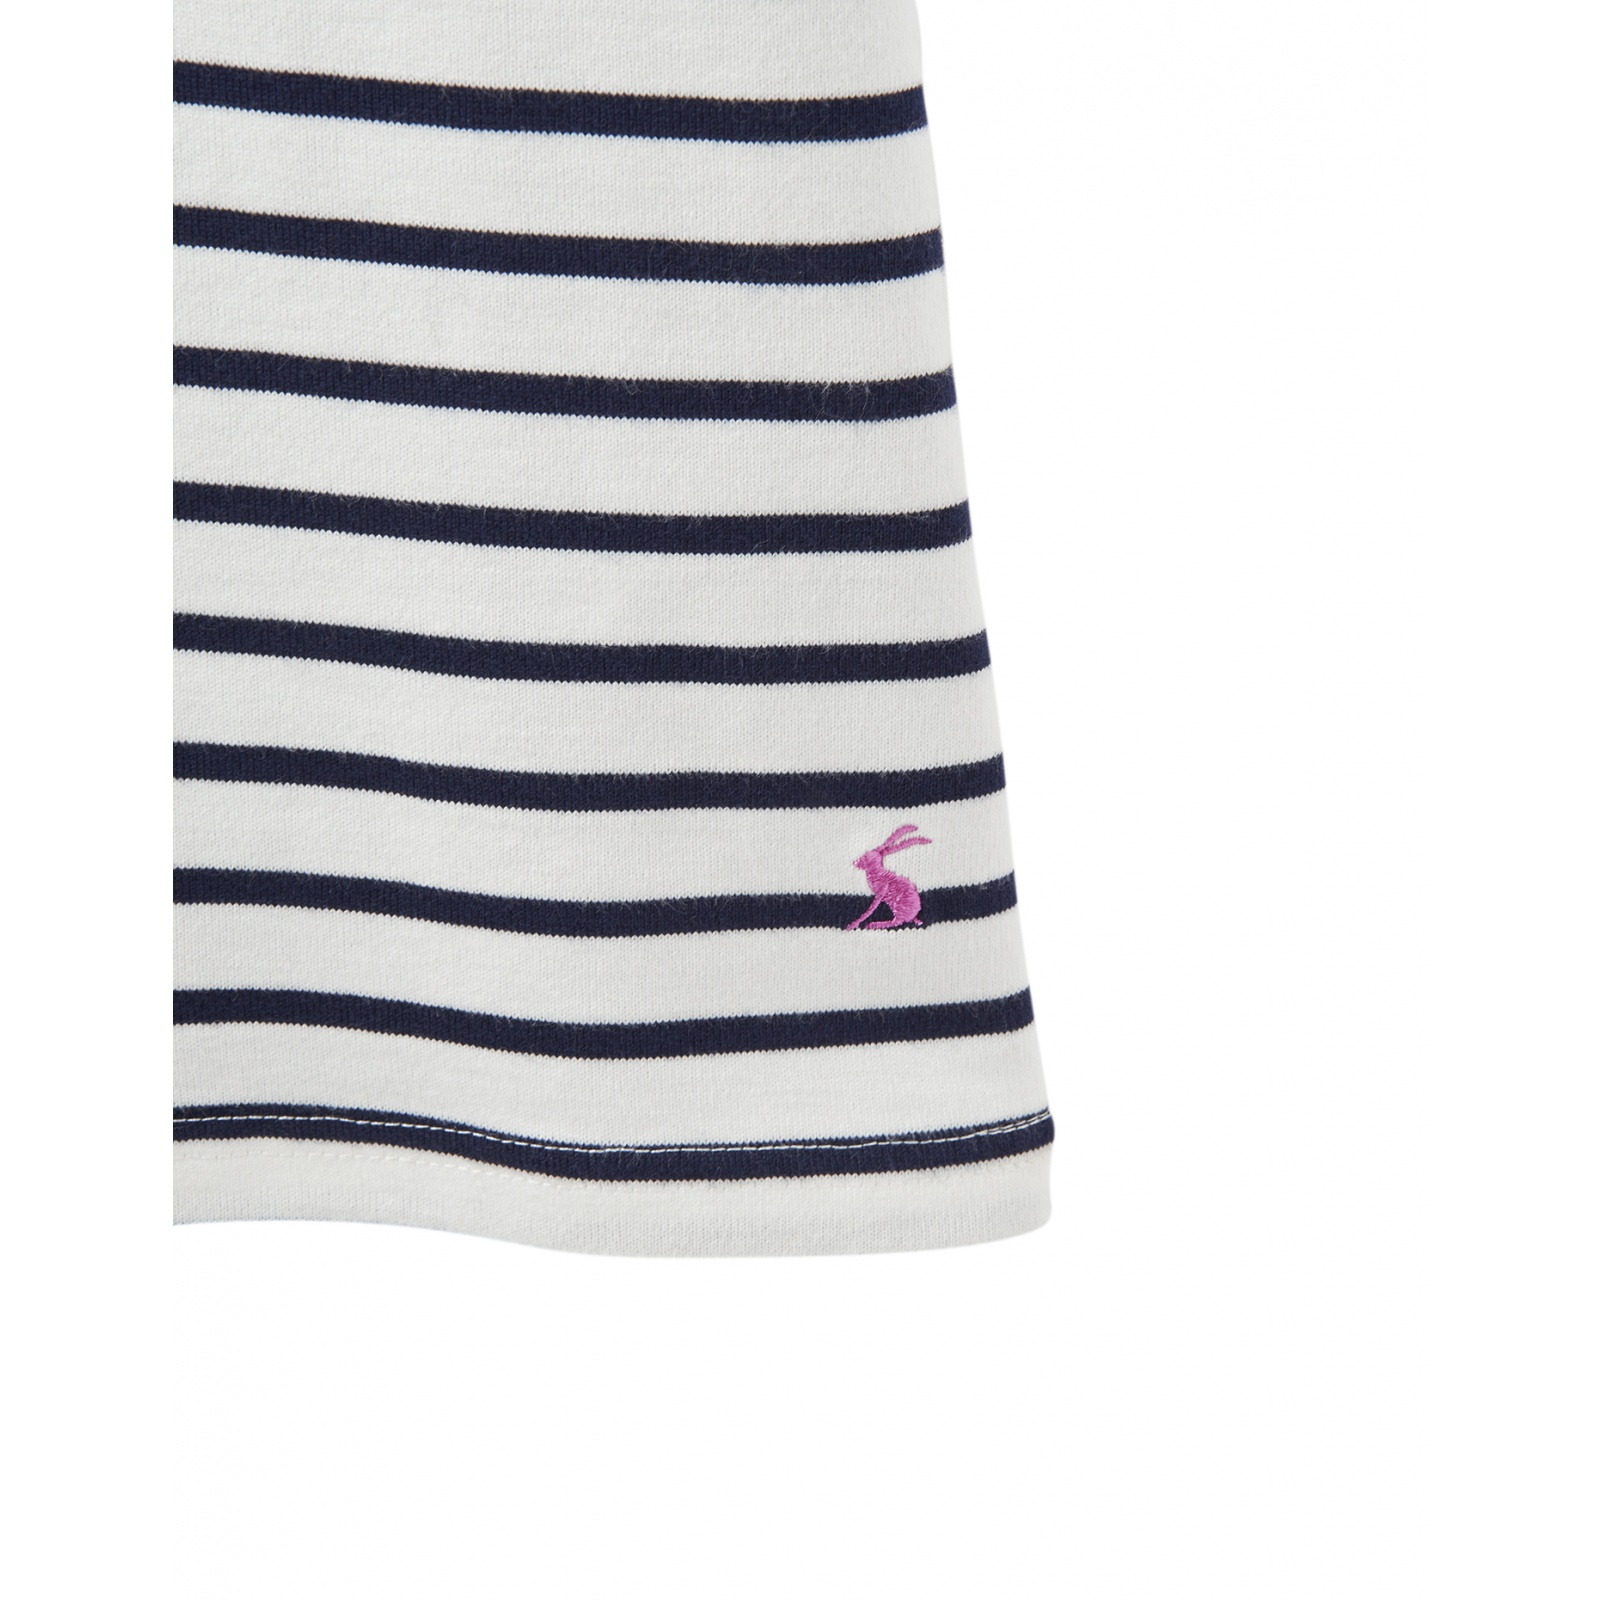 Joules-Riviera-T-Shirt-Dress-with-Short-Sleeves-SS19 miniature 14